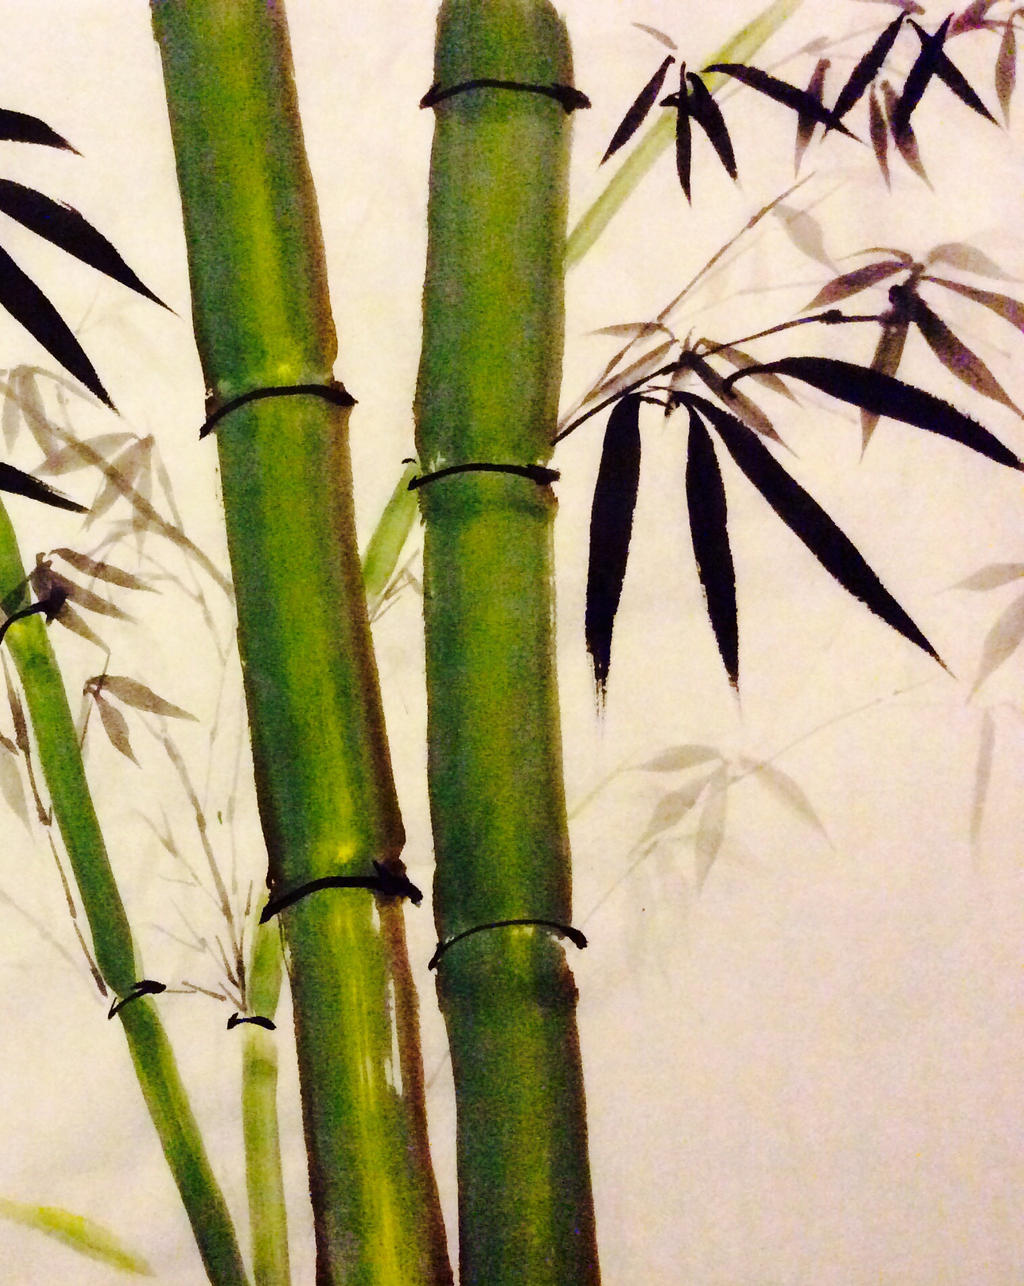 Bamboo spring by Rosalind6463